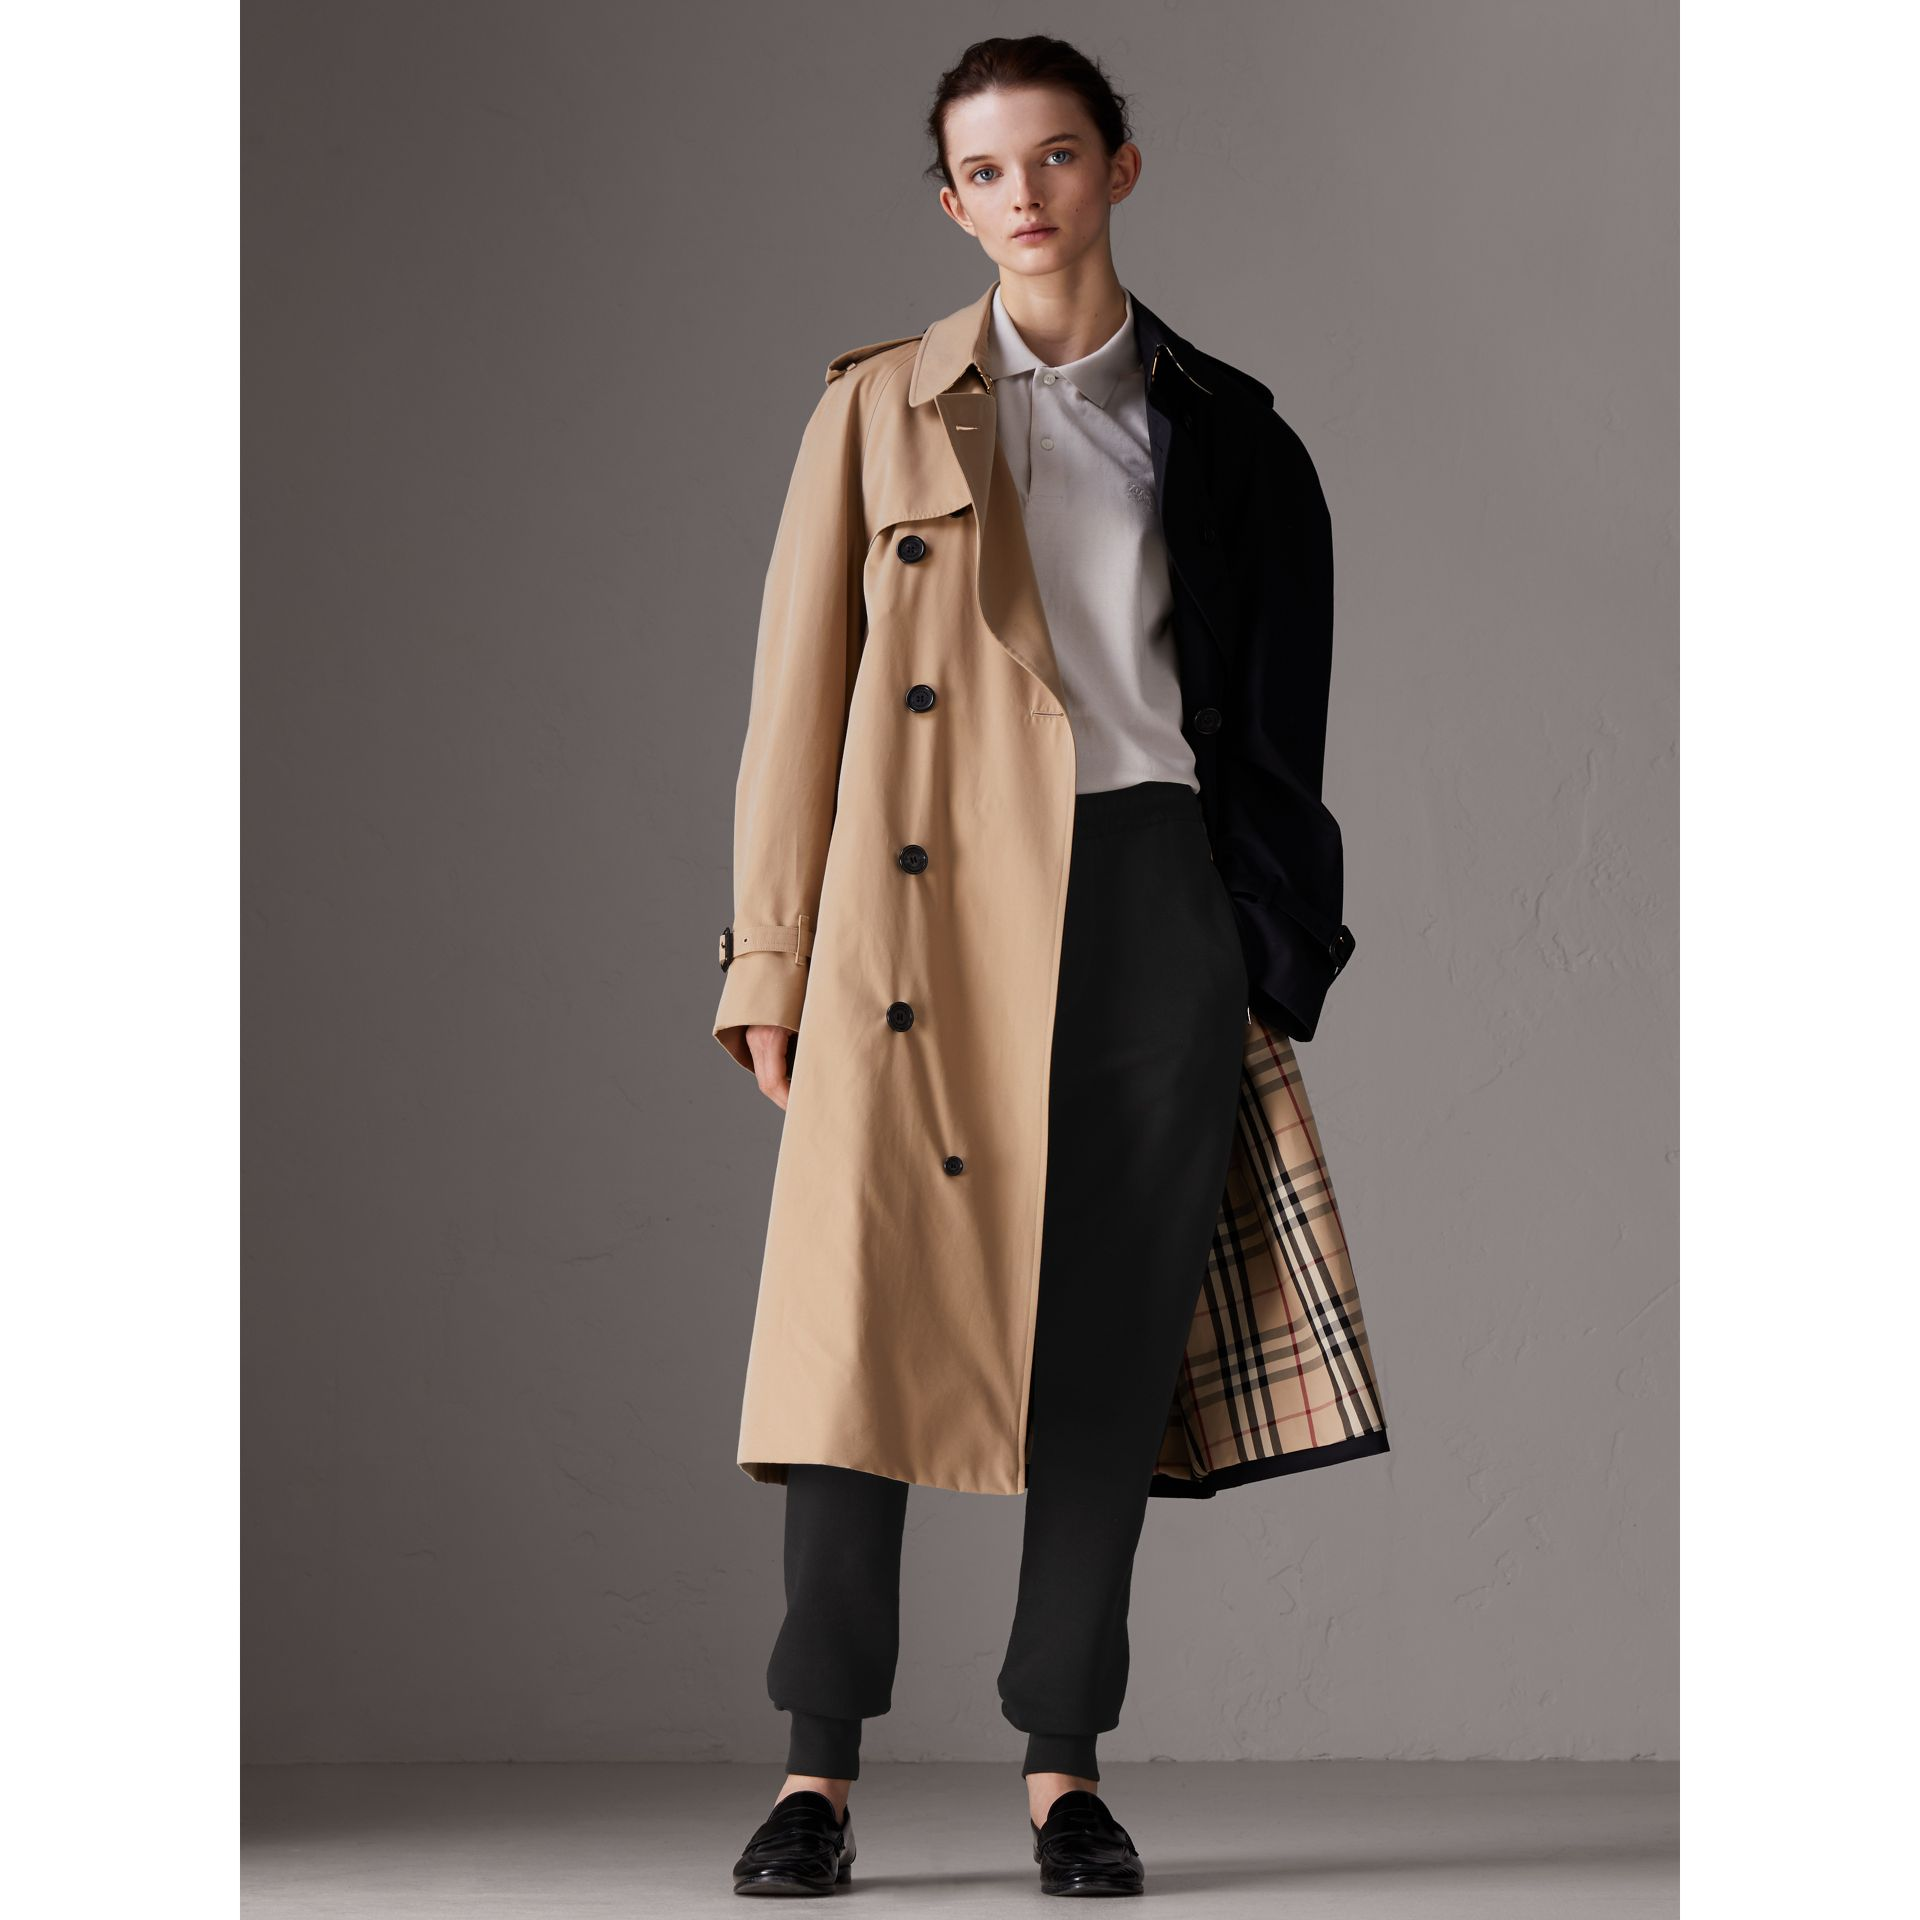 Gosha x Burberry Two-tone Trench Coat in Honey | Burberry United Kingdom - gallery image 3